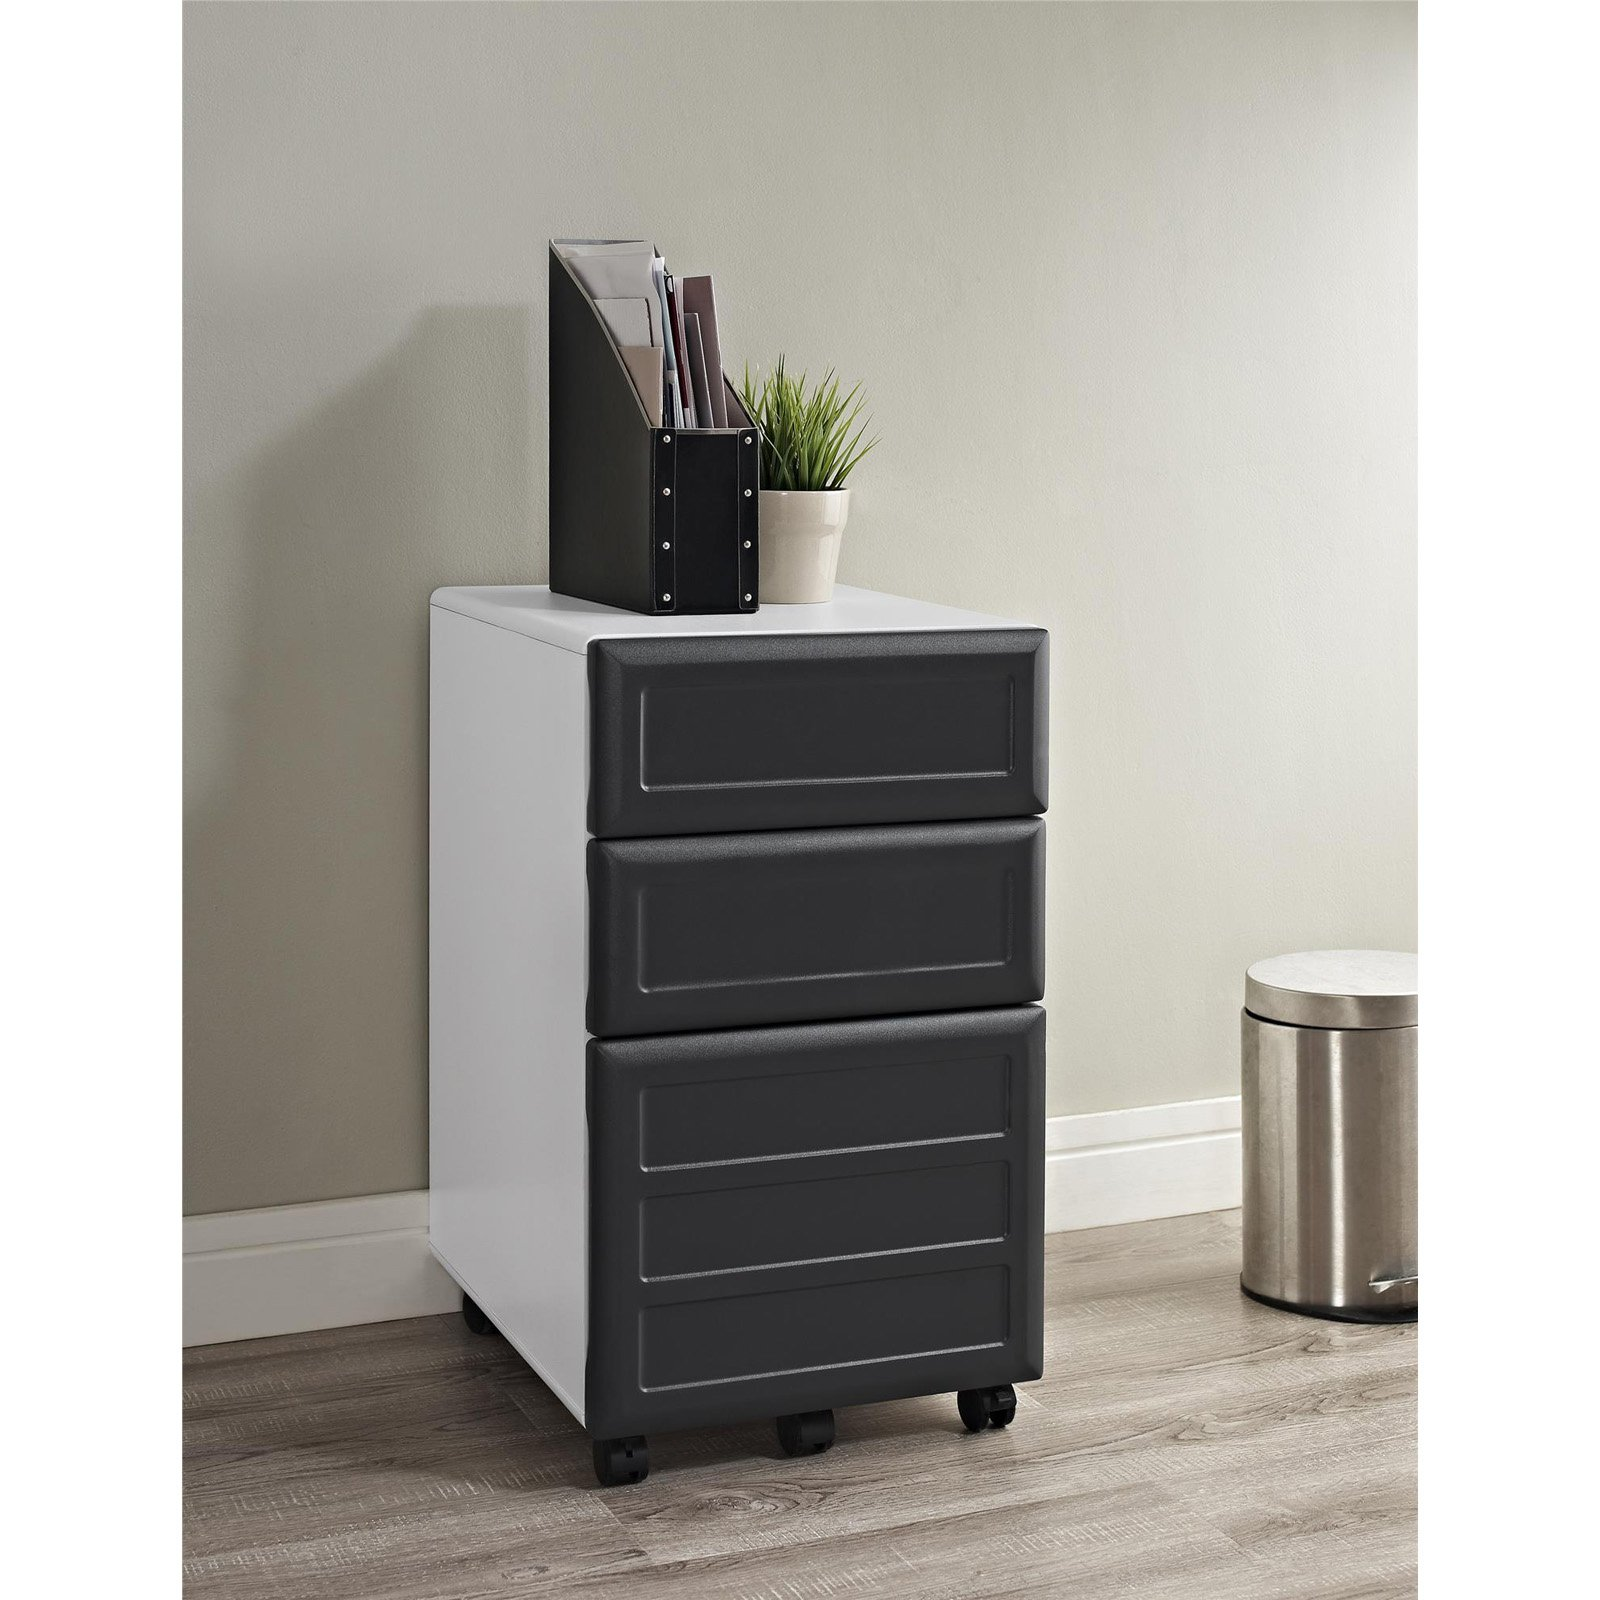 Ameriwood Home Pursuit Mobile File Cabinet, White/Gray